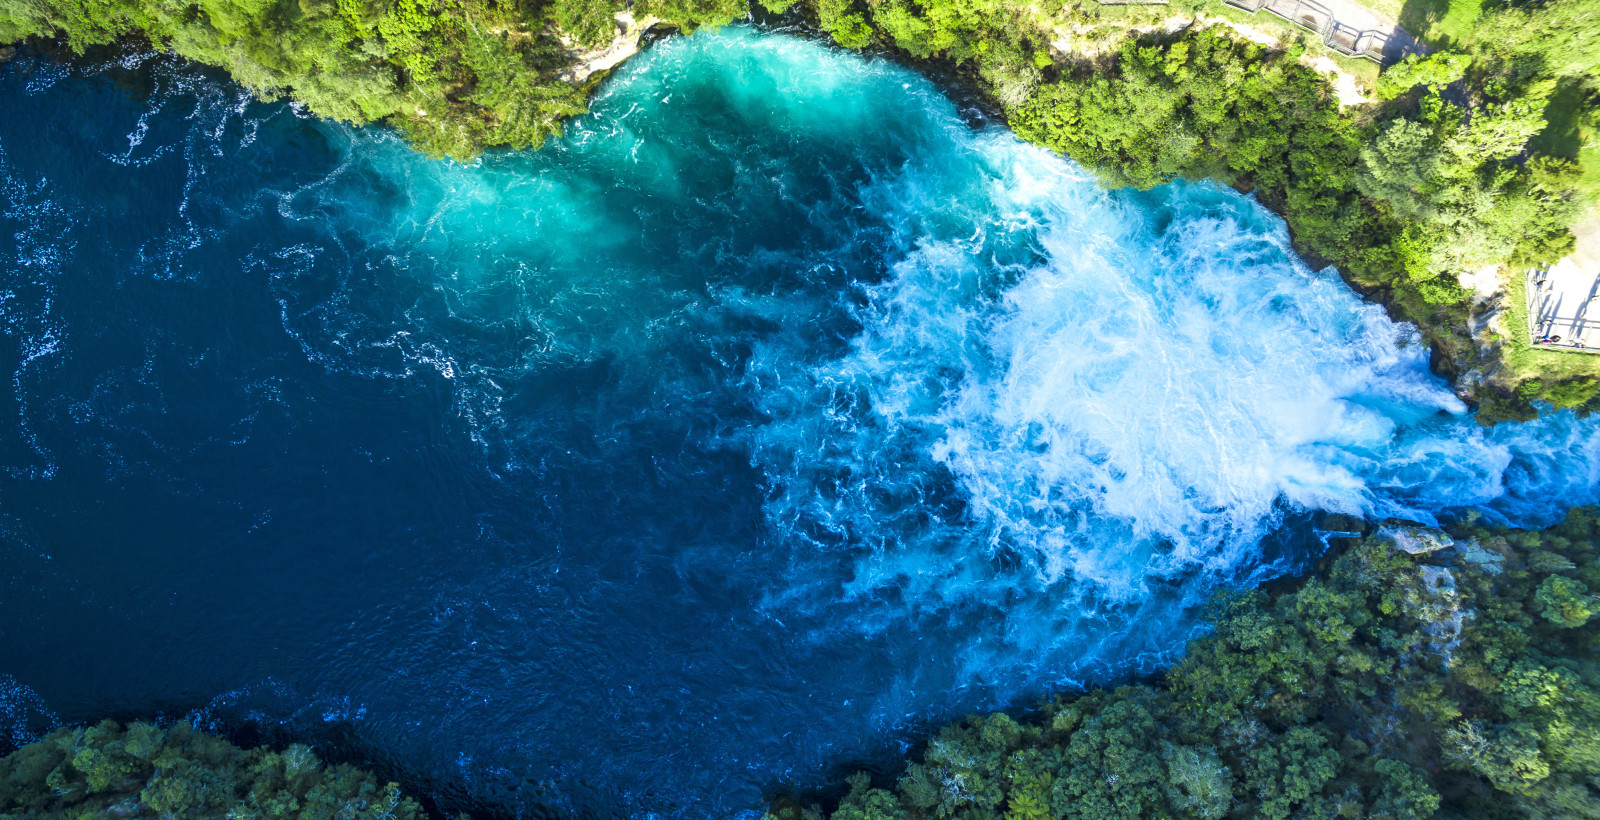 Huka Falls GettyImages 531198496 edit